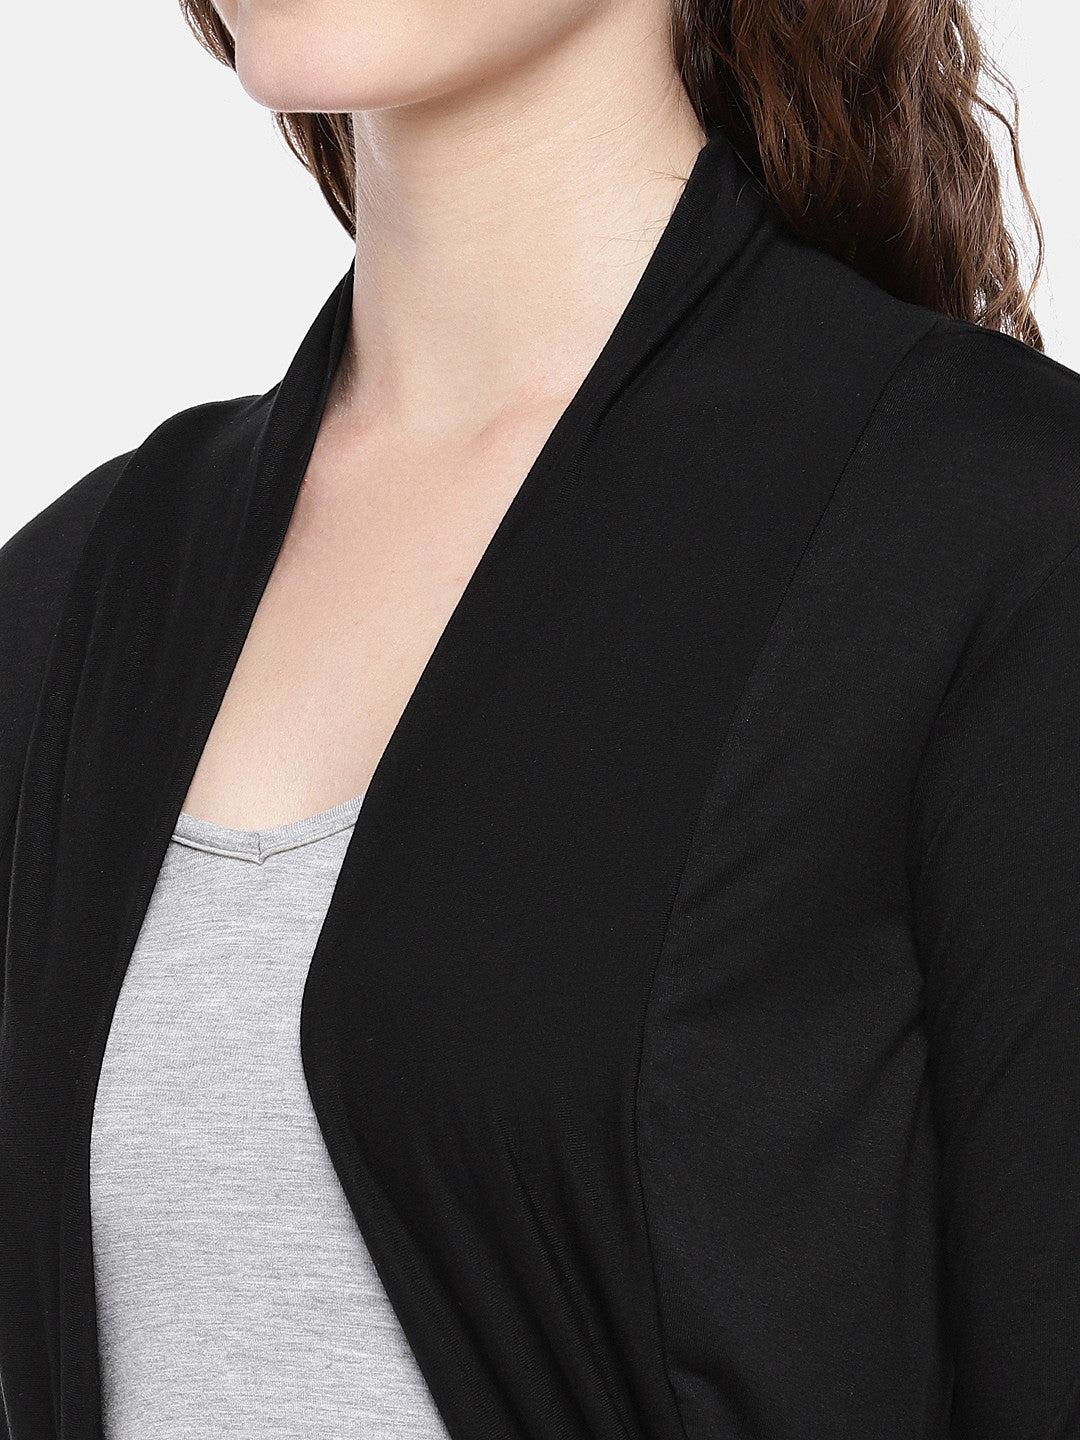 Black Solid Open Front Shrug-5